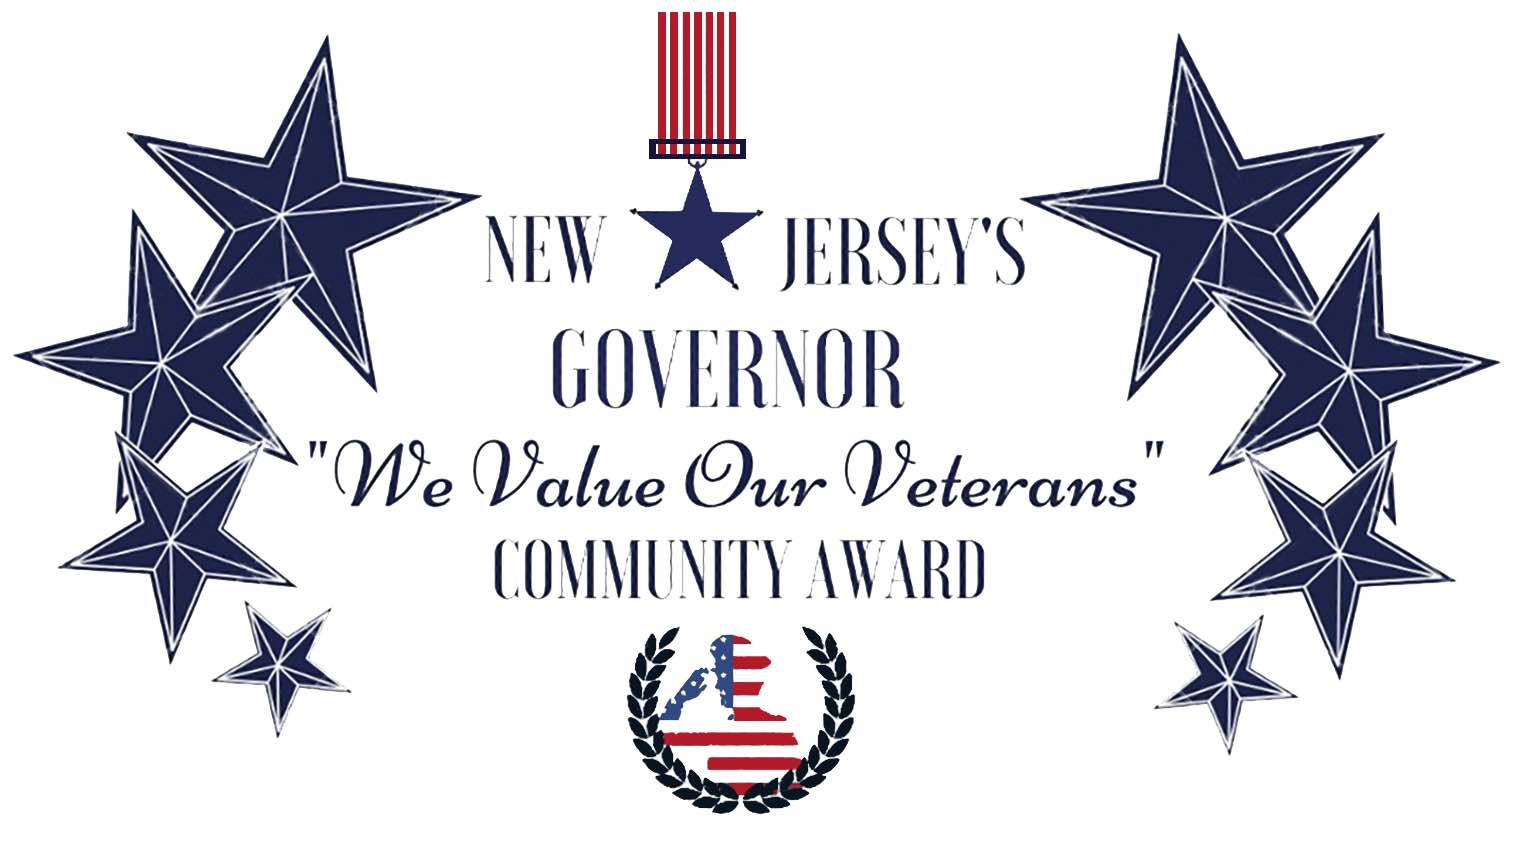 Veterans award